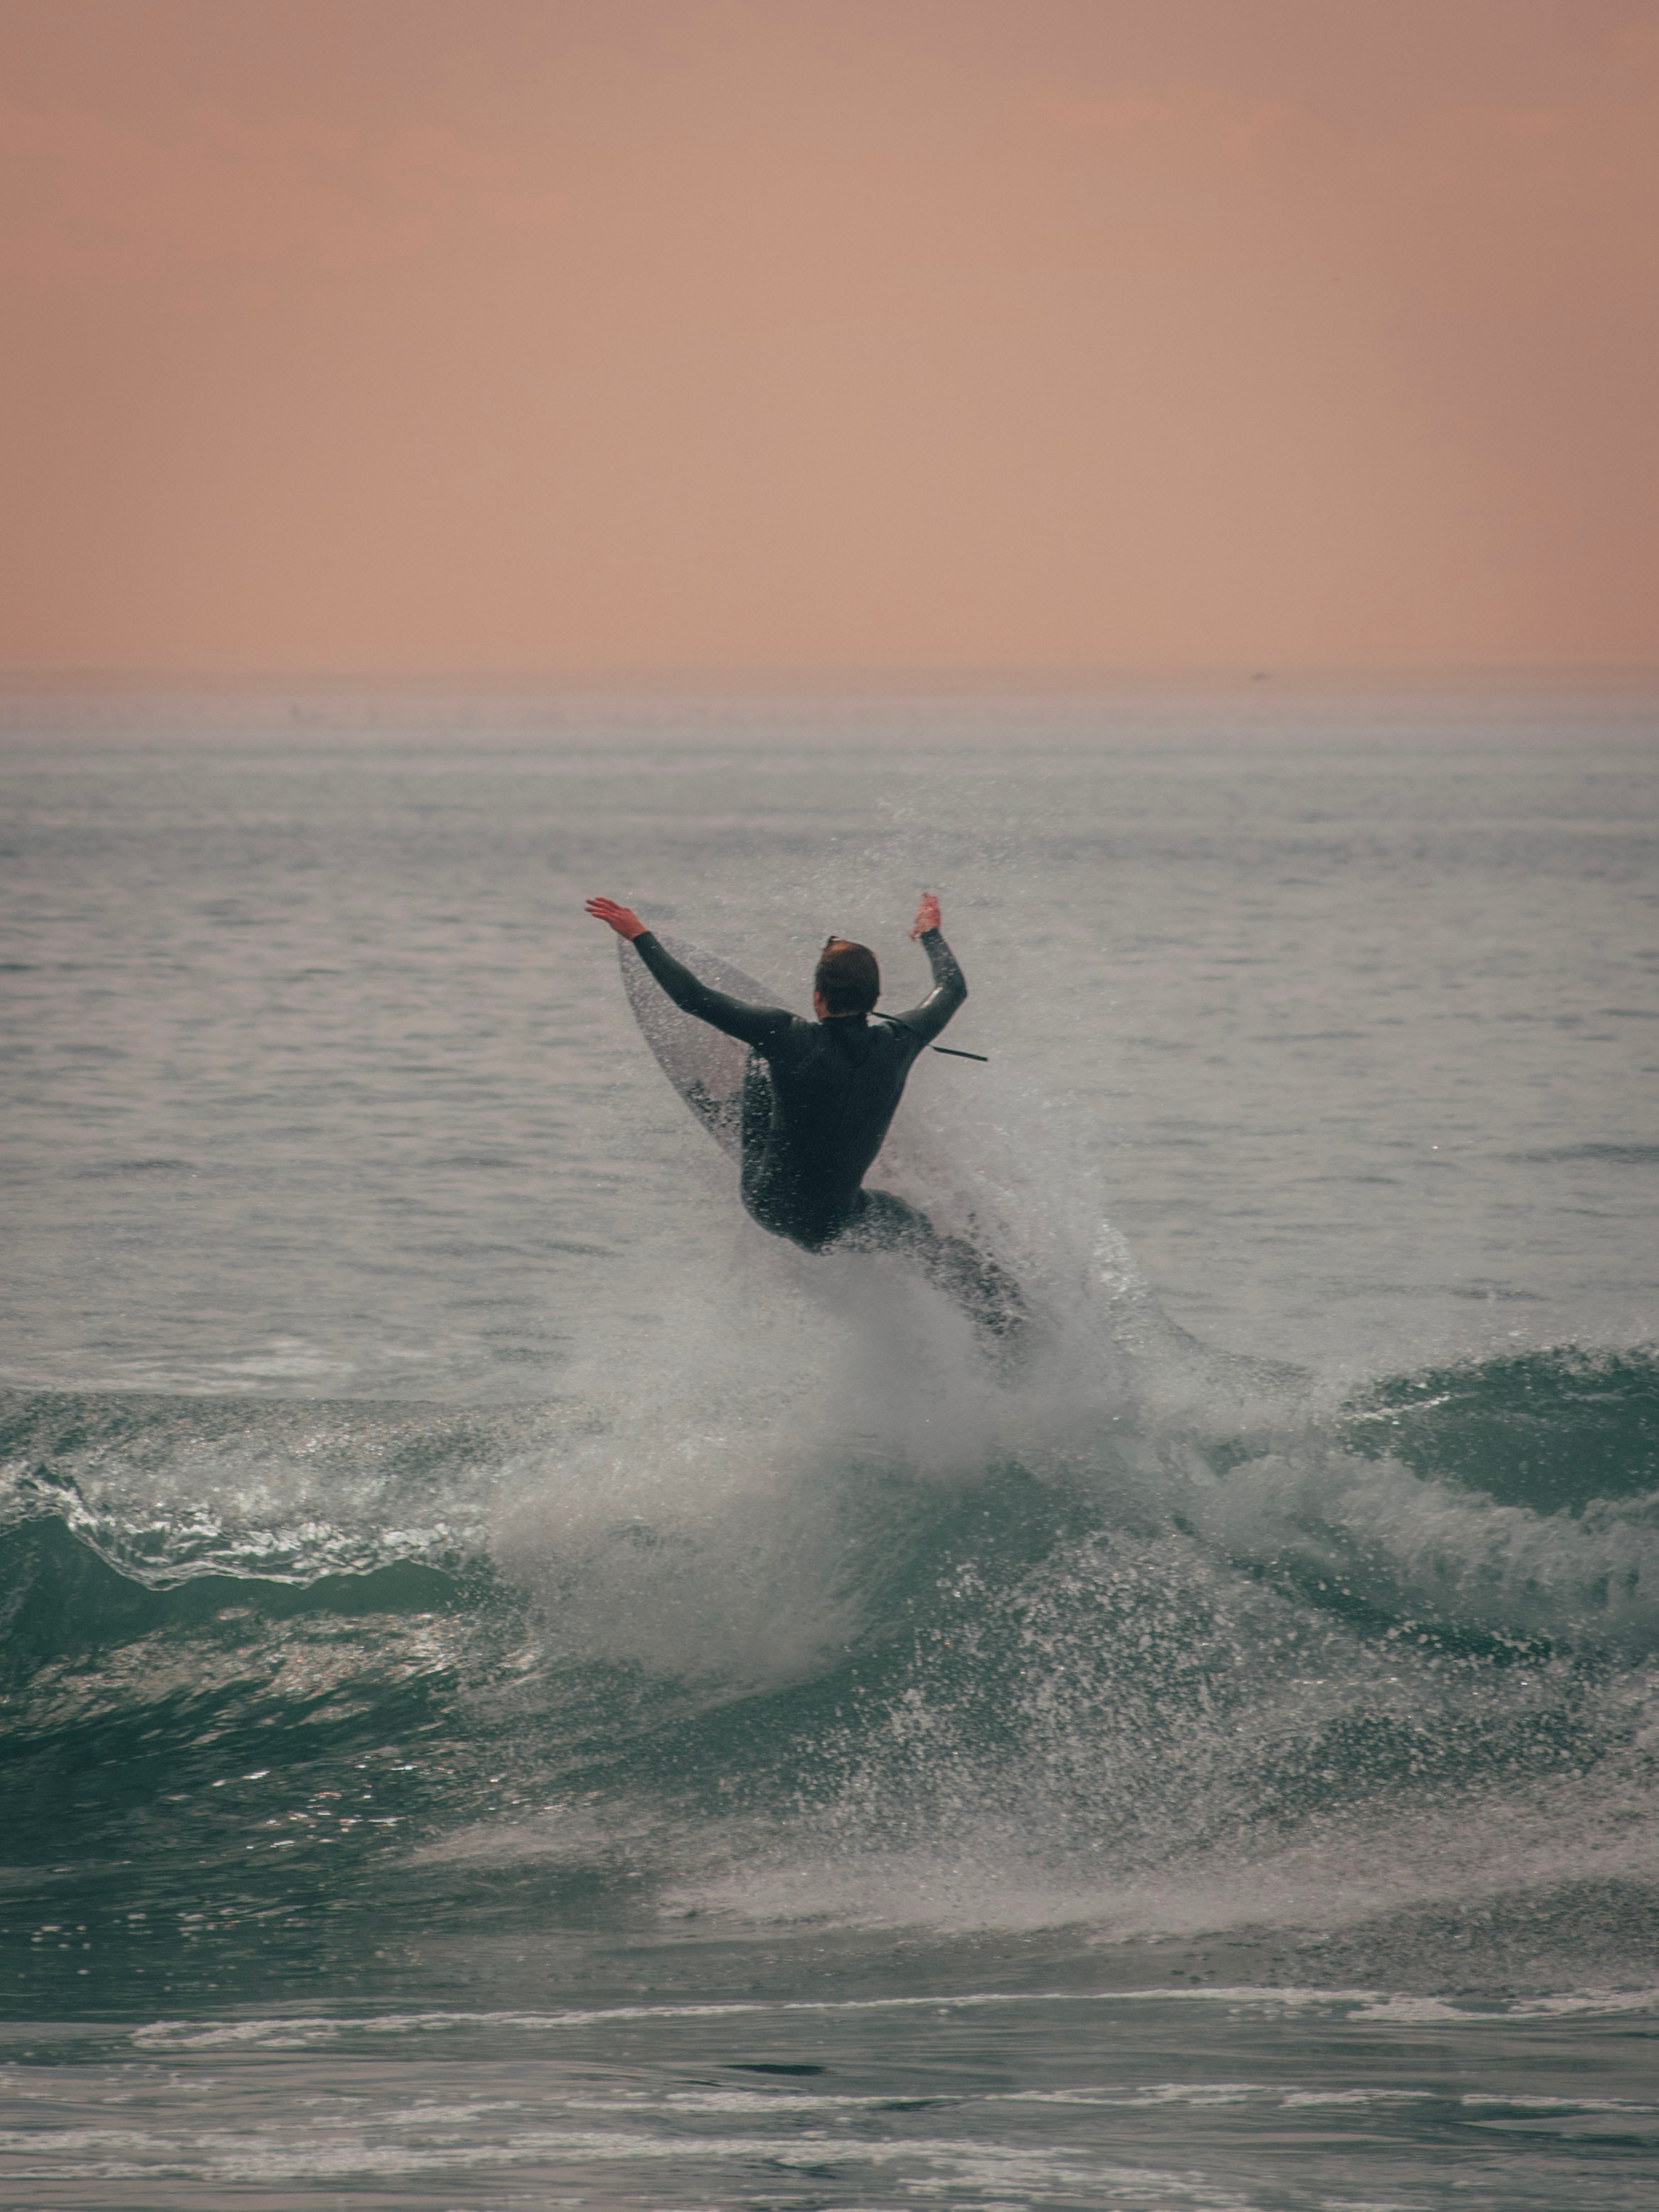 107891 download wallpaper Sports, Serfing, Surfer, Sea, Spray, Waves screensavers and pictures for free